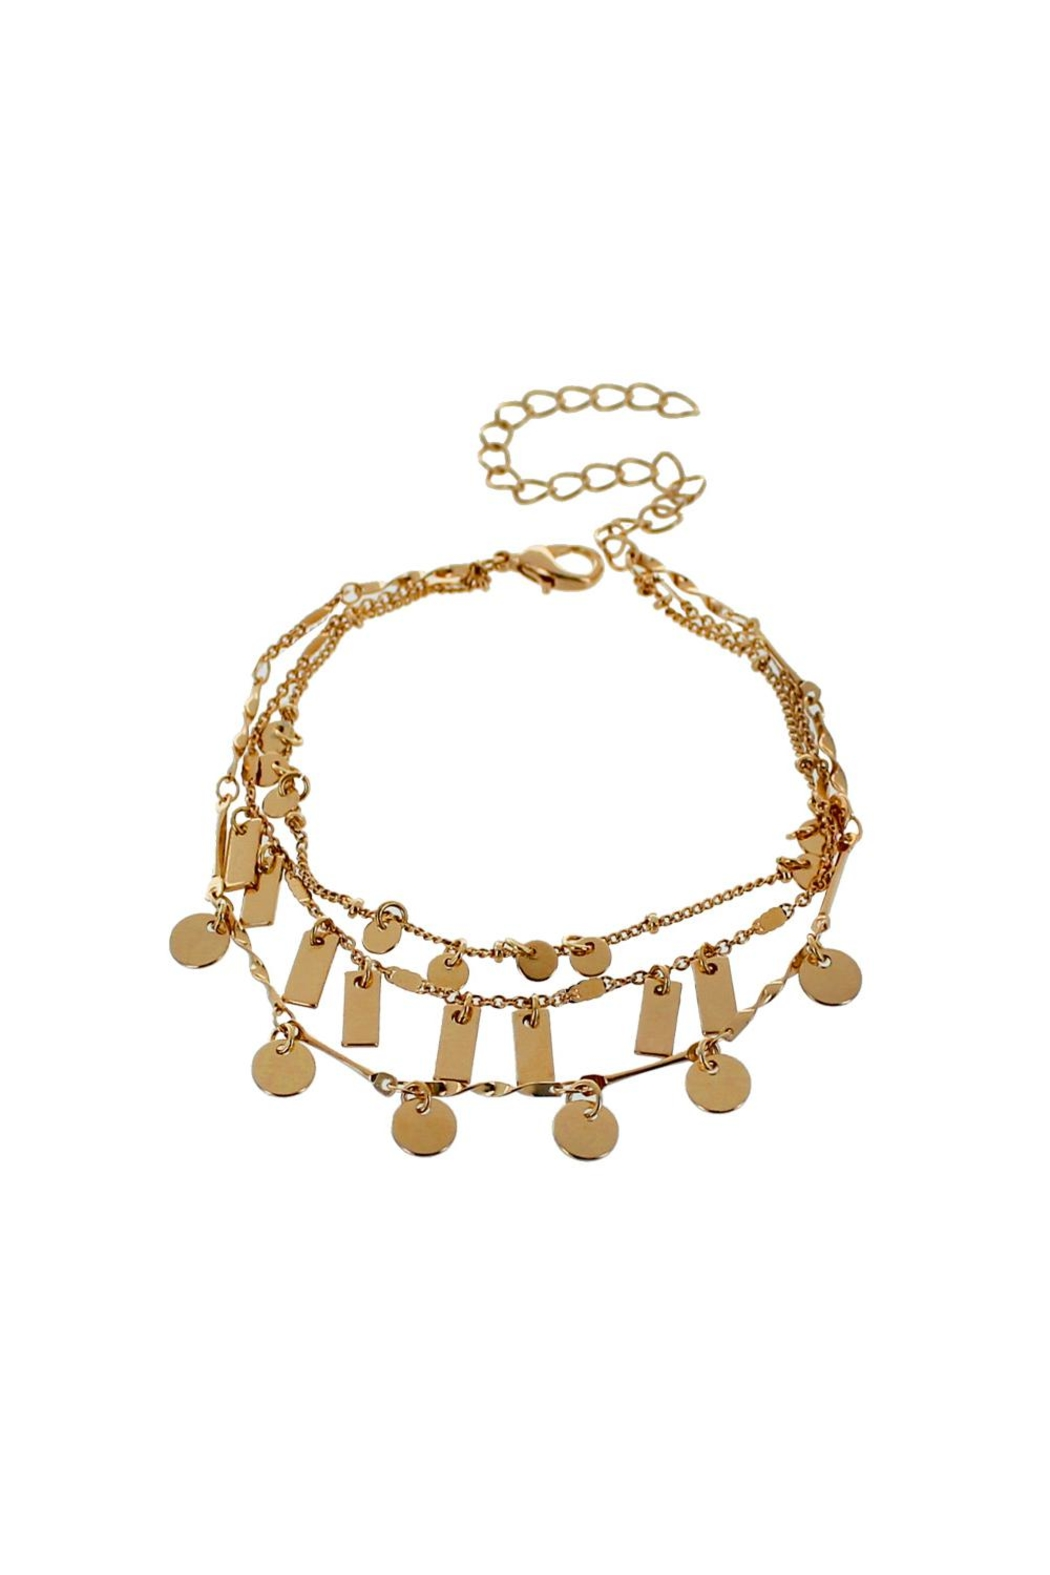 Light Years Collection Gold Chain Bracelet - Main Image